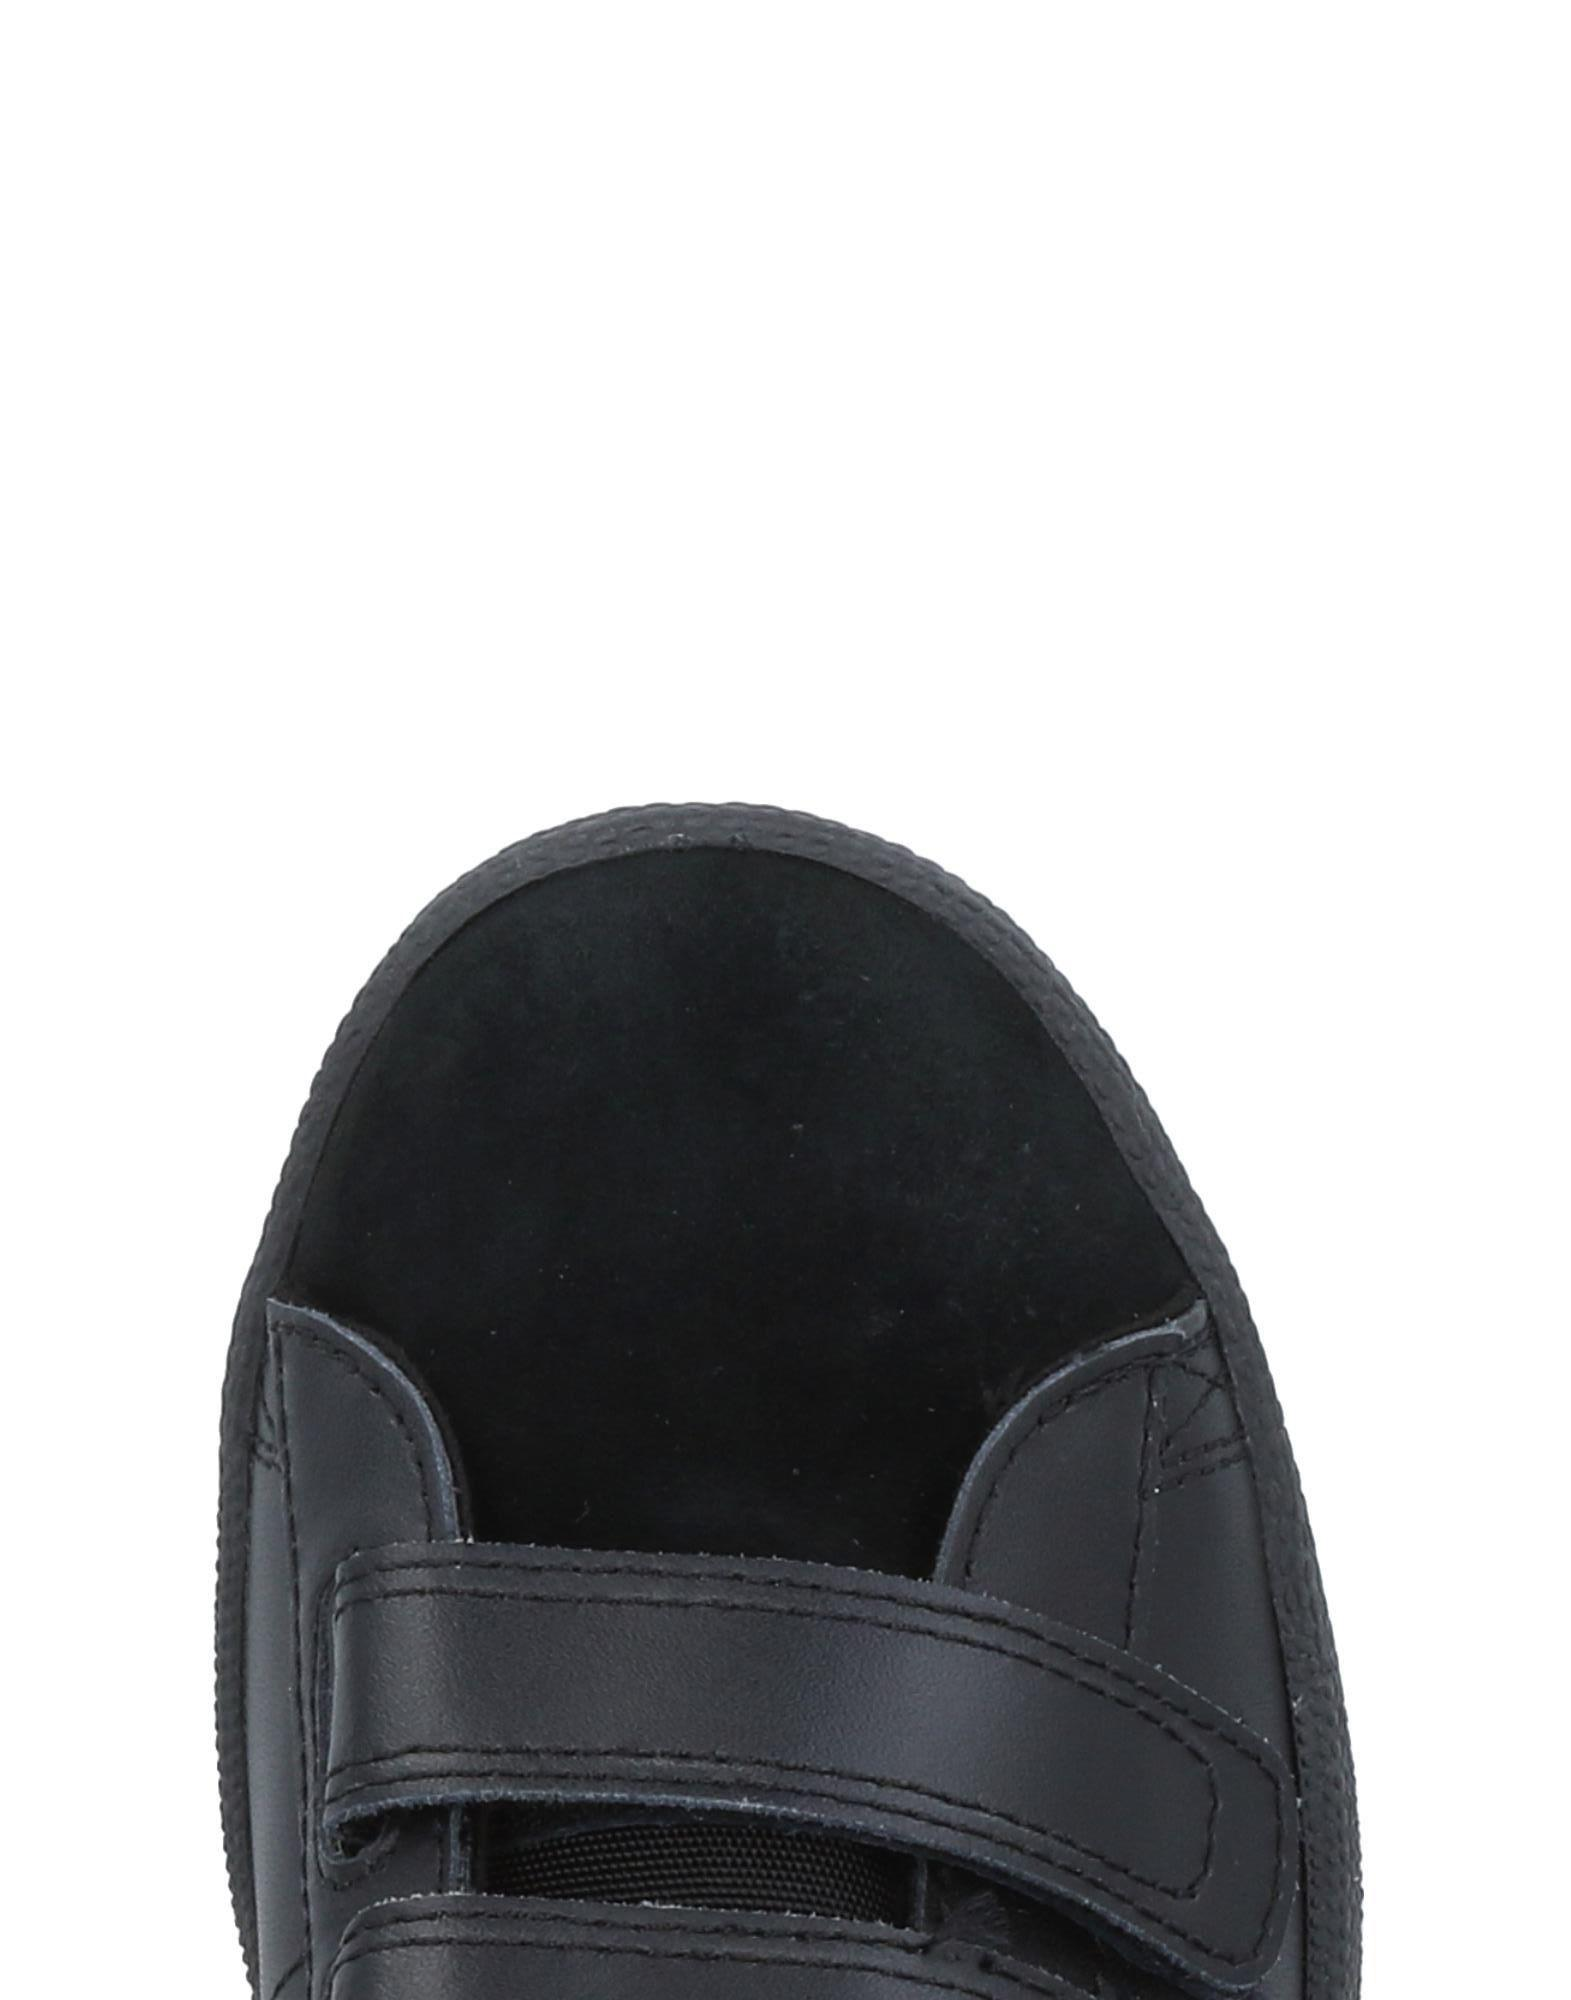 Product Of New York Leather Low-tops & Sneakers in Black